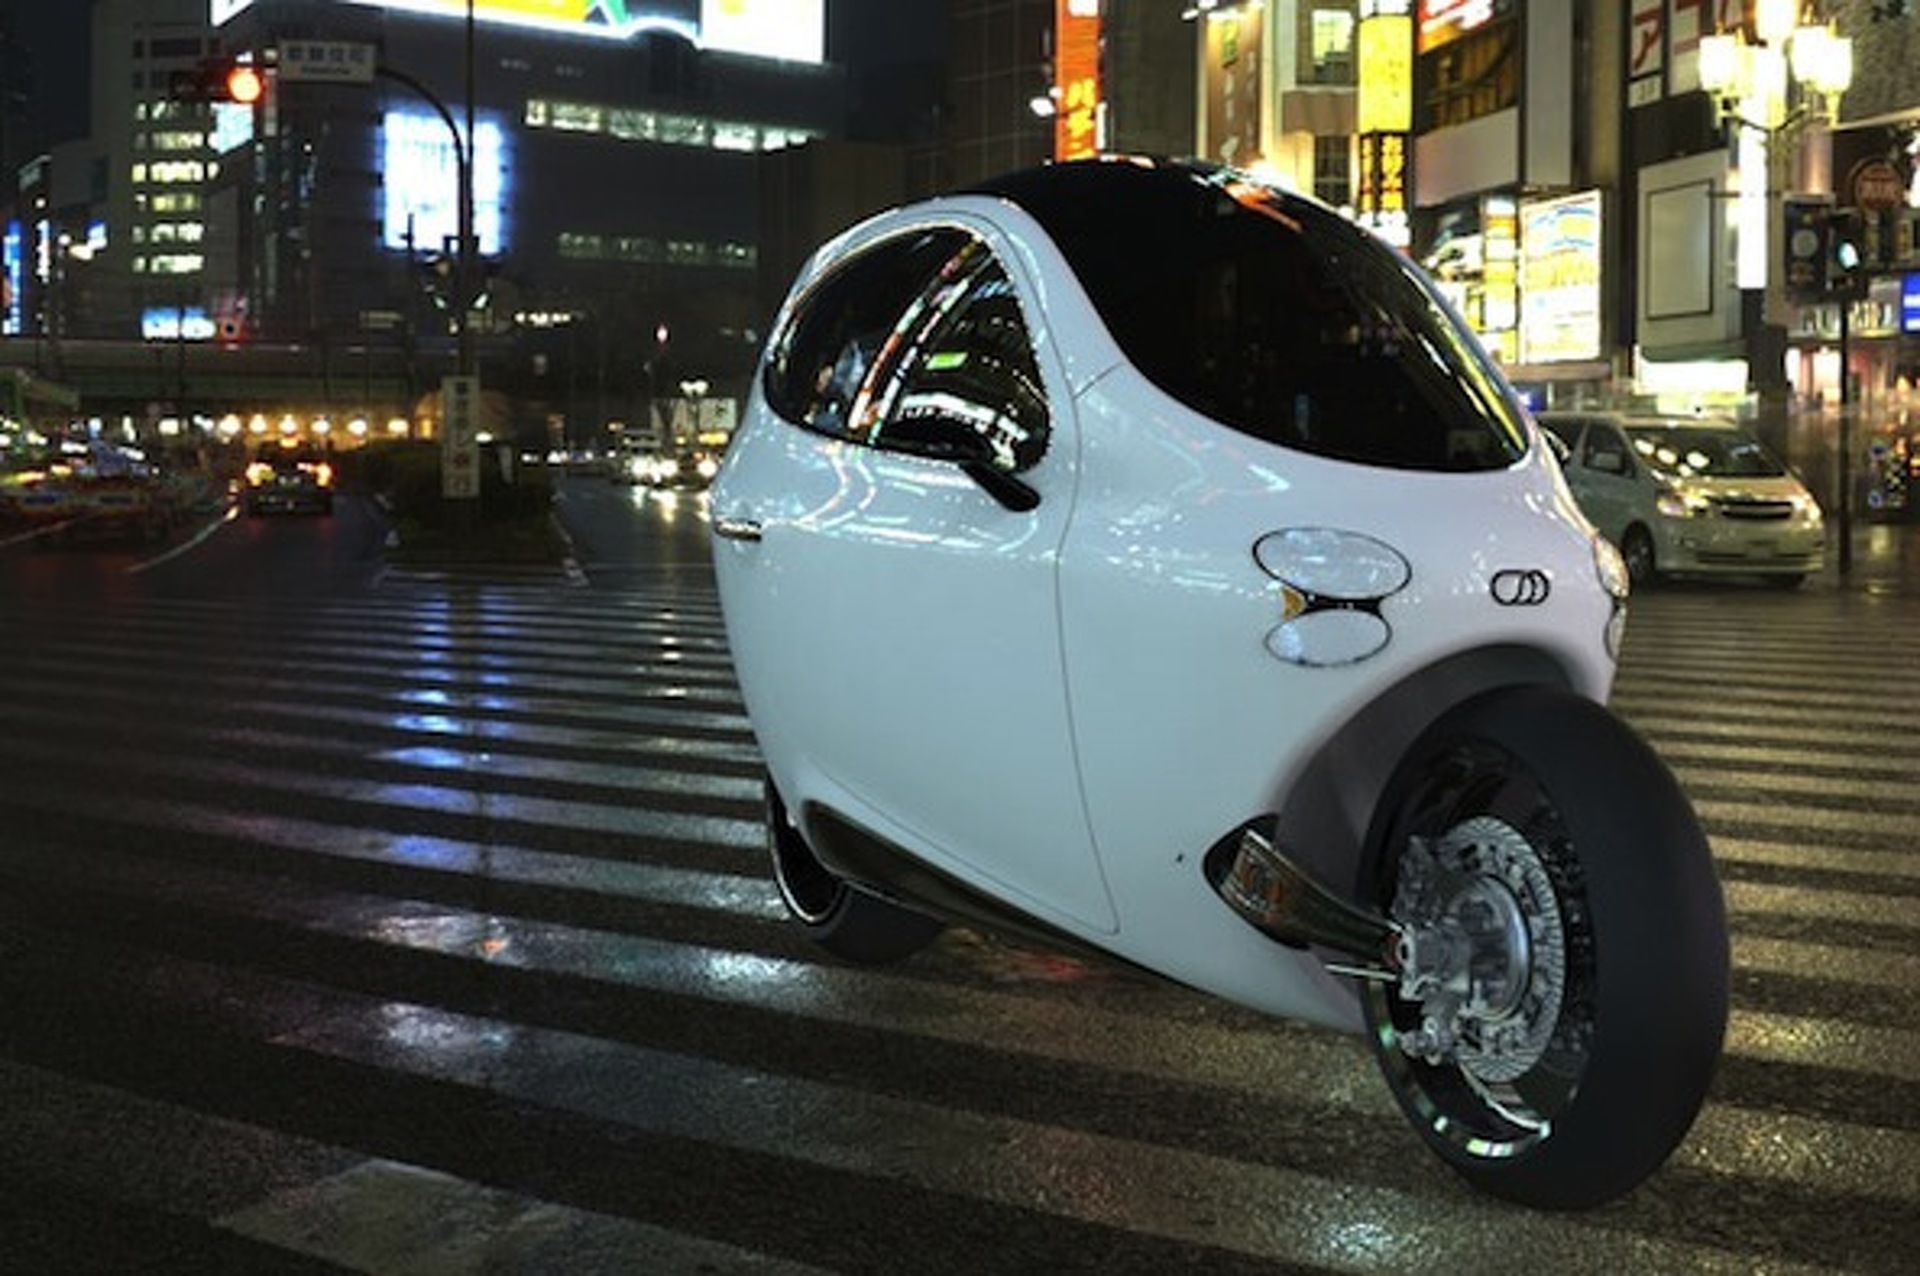 LIT Motors Envisions Their Gyro-Based City Car as the Future of Mobility